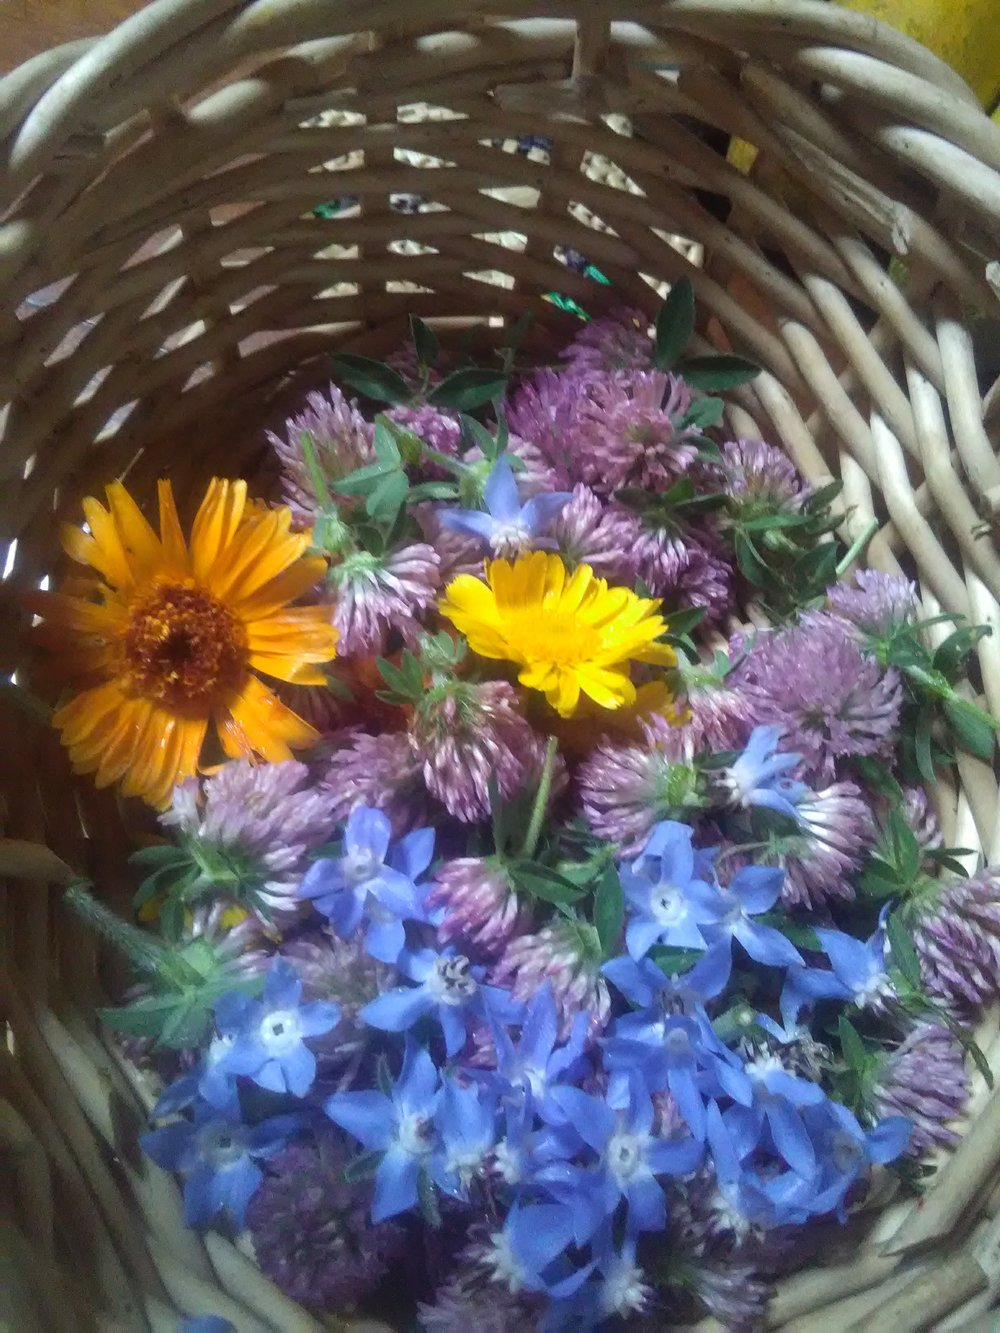 A harvest of calendula, borage and red clover that will be dried and made into a delicious, relaxing and nutritious tea! A little taste of summer in winter.